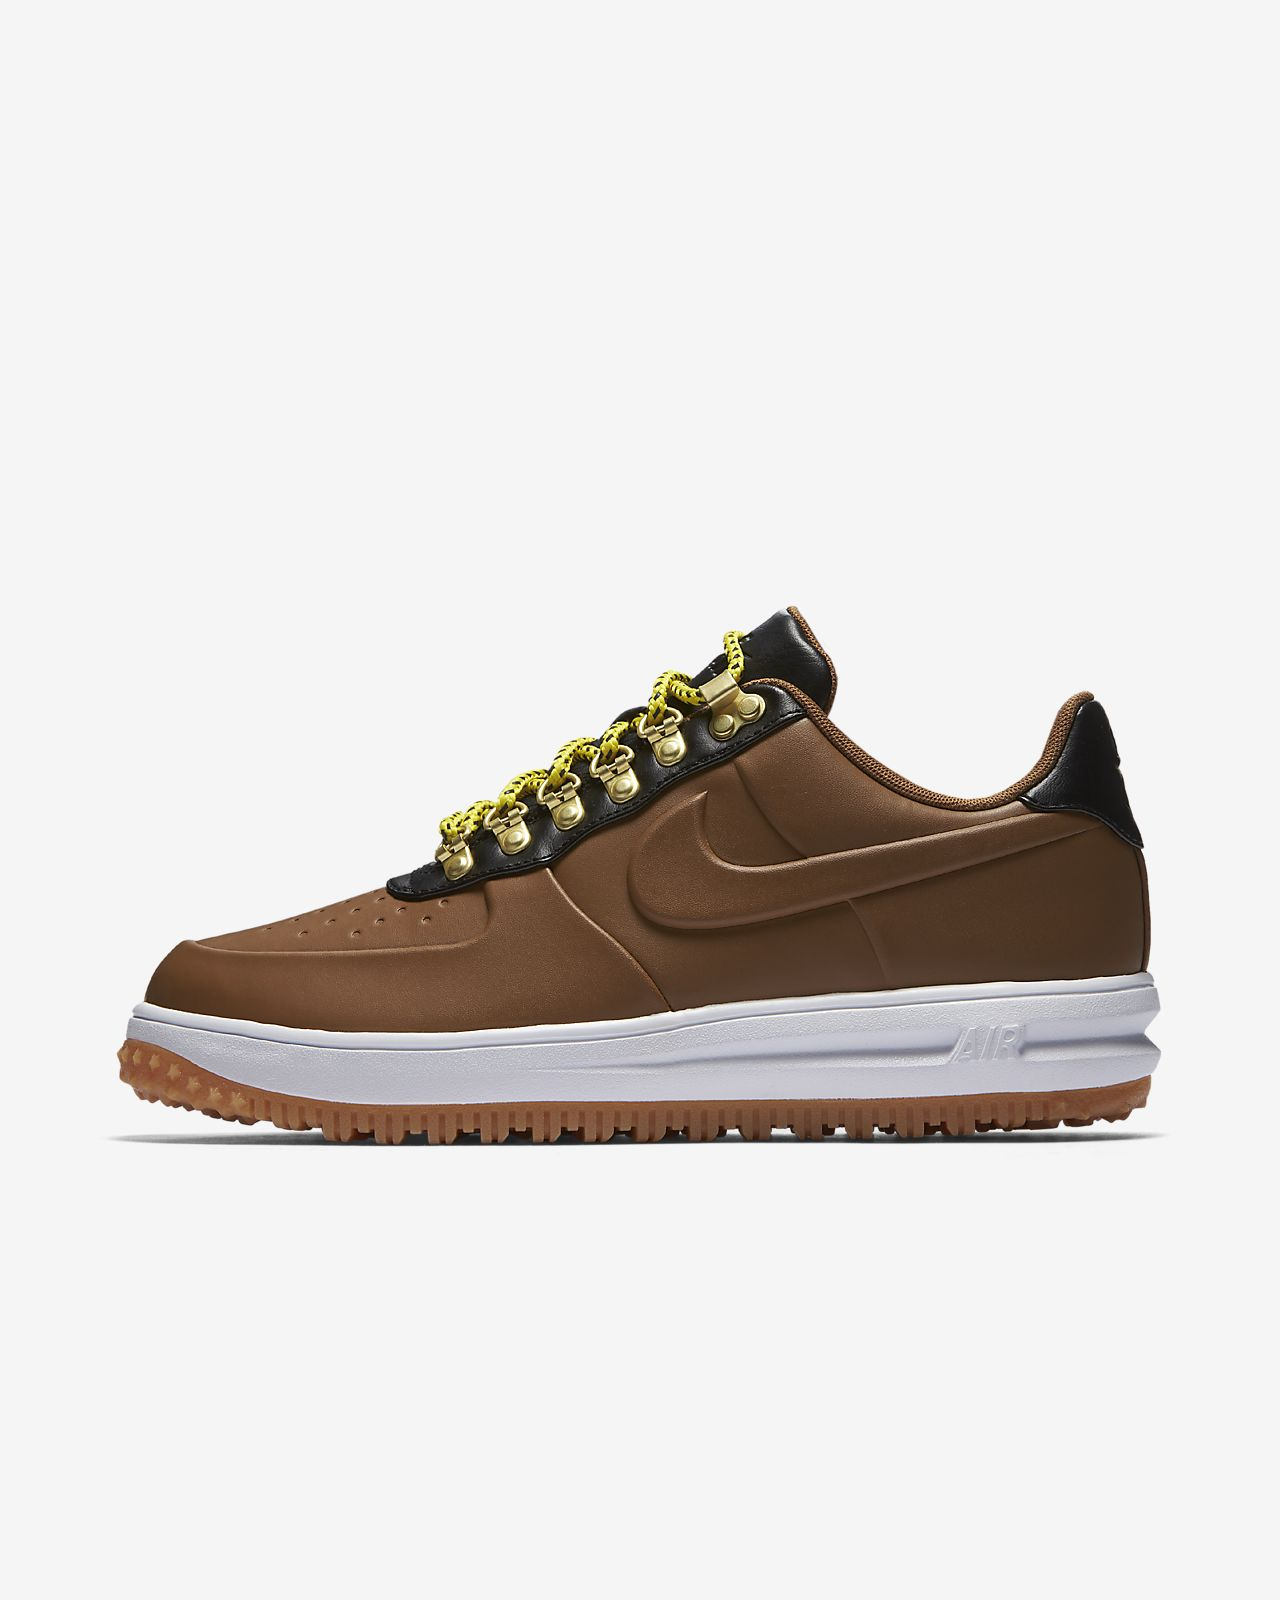 Chaussure Nike Lunar Force 1 Duckboot Low pour FR